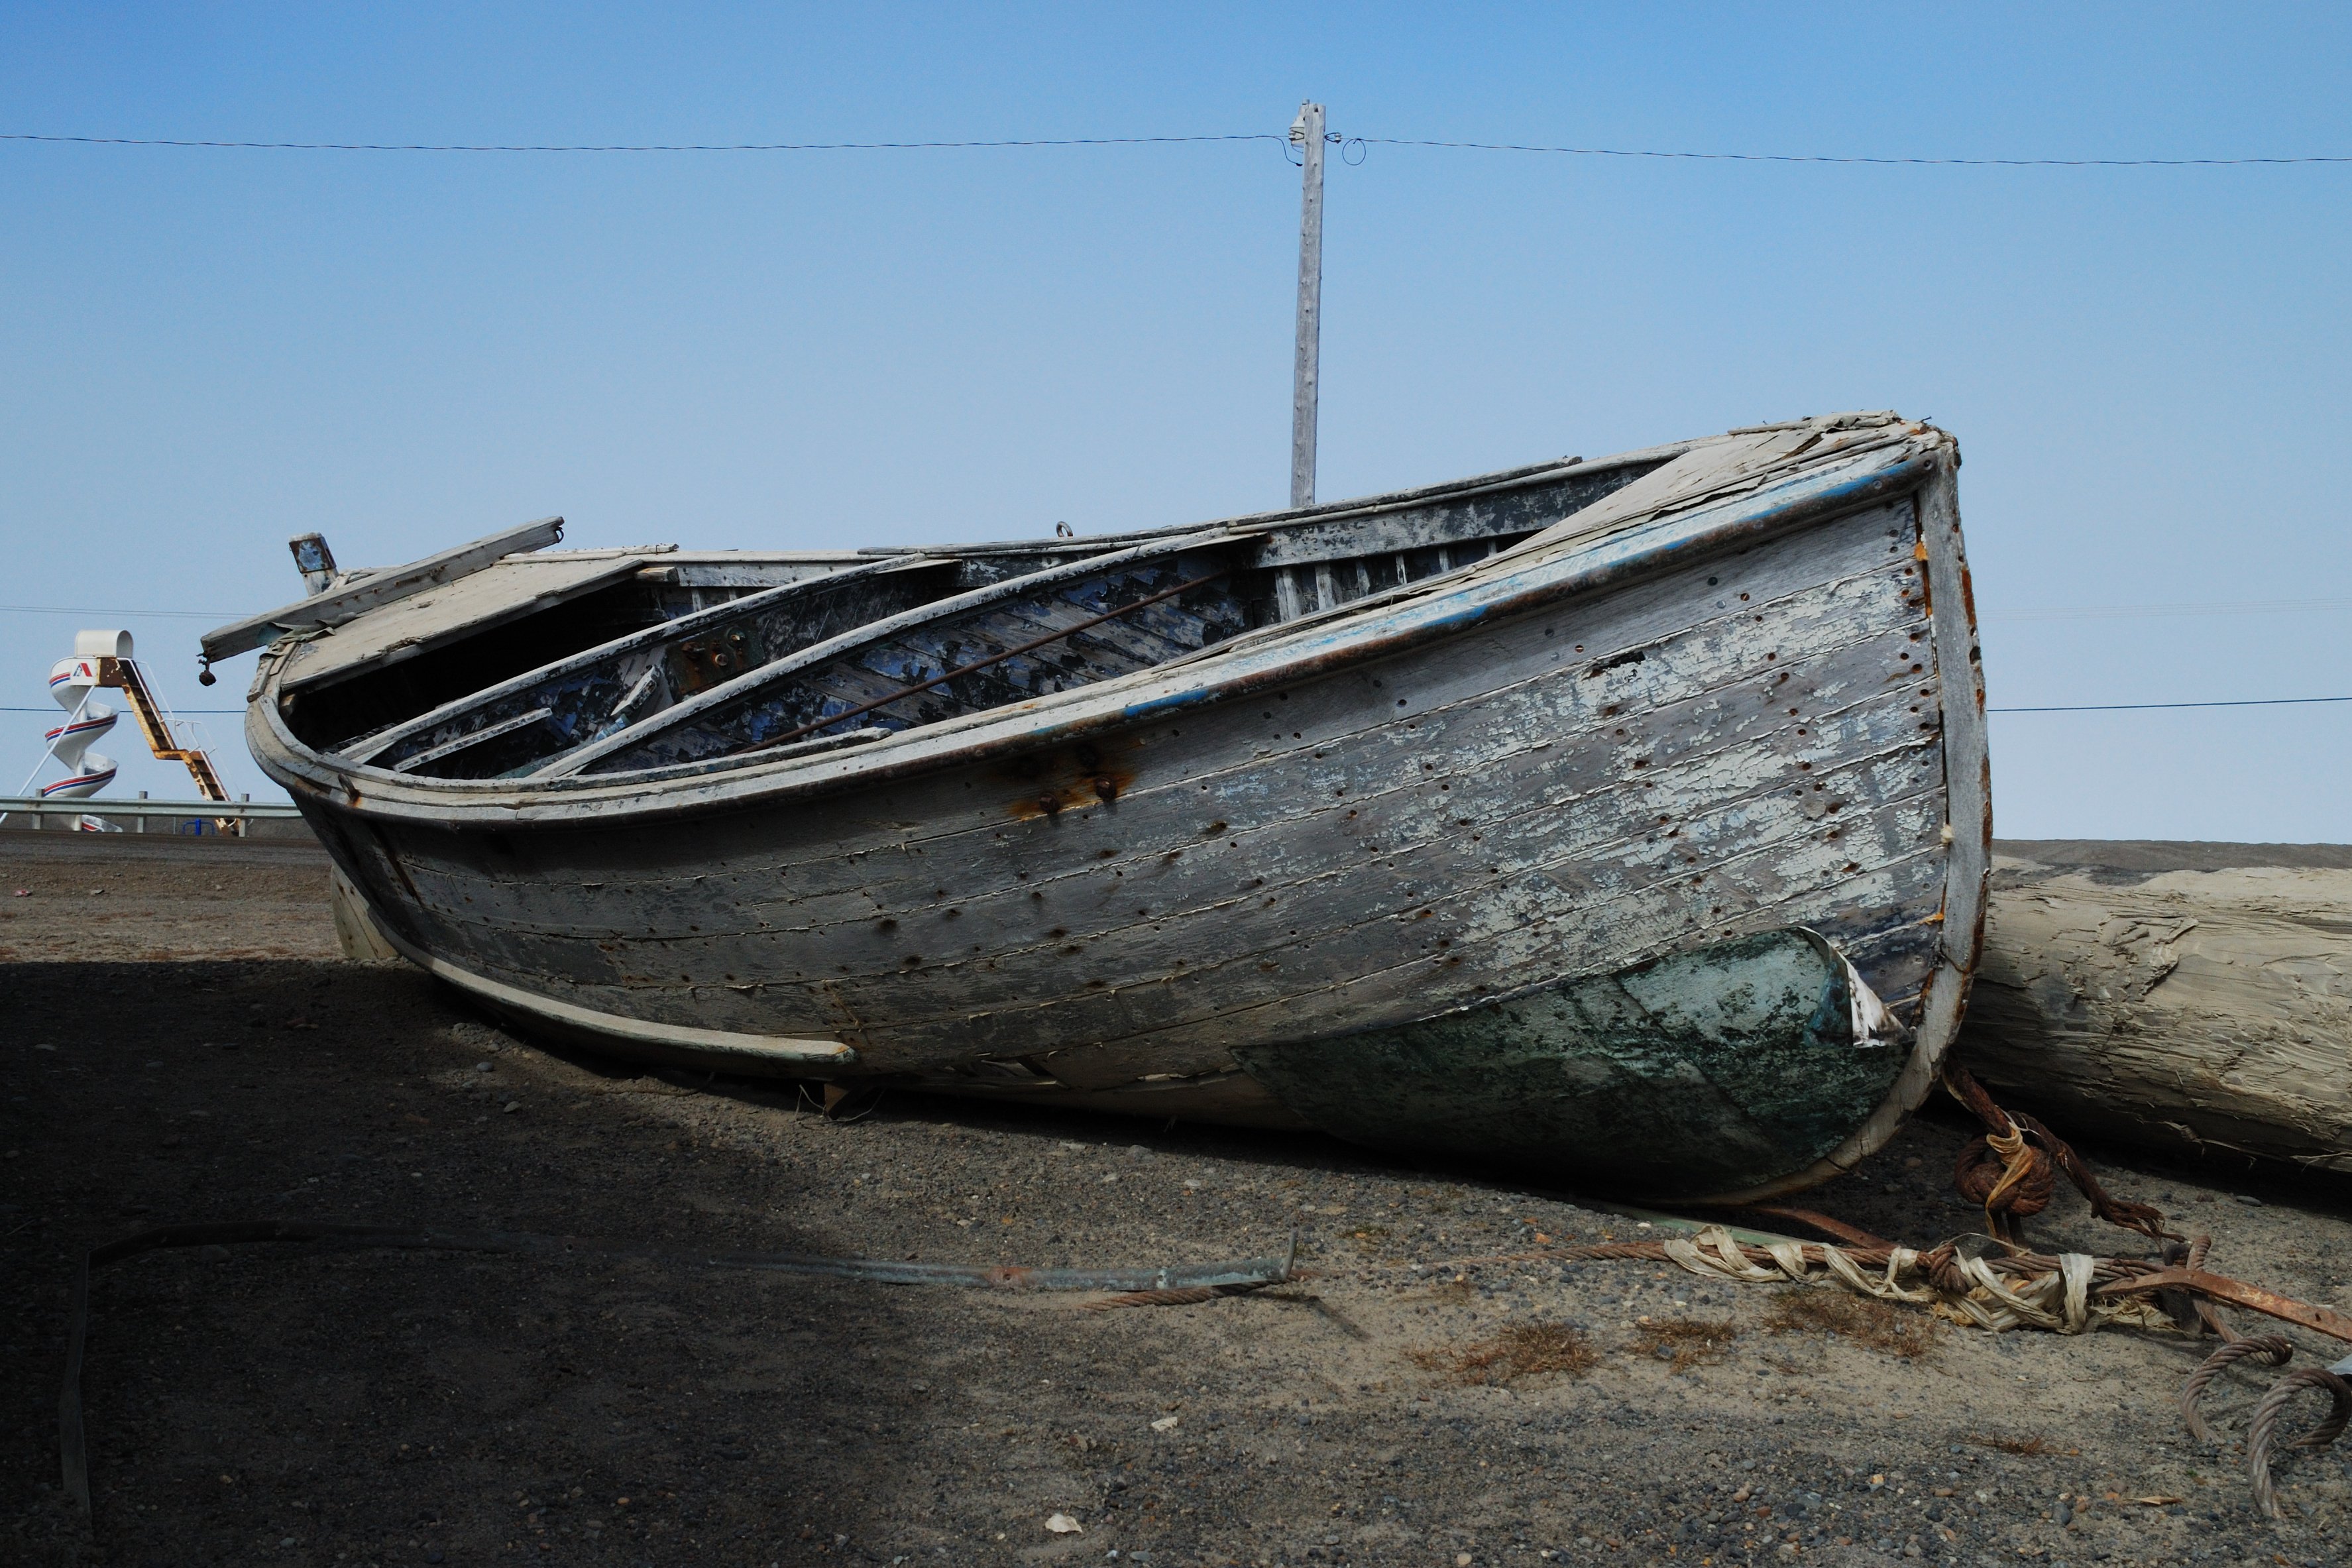 Abandoned boat photo